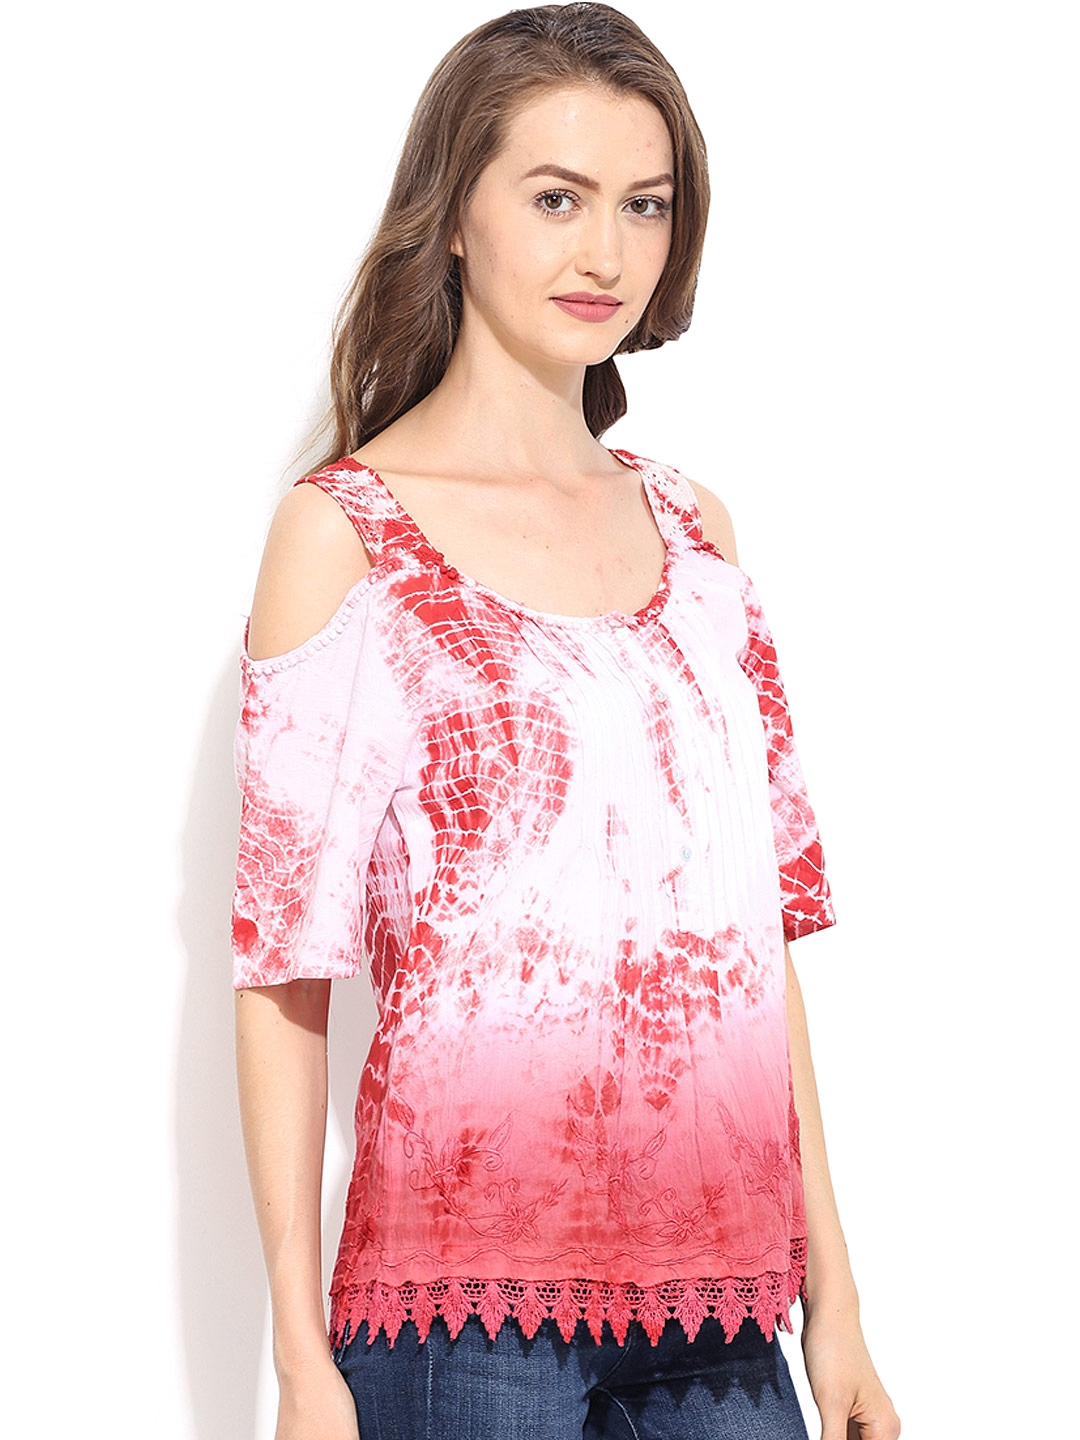 98d35fa035a104 Buy Free   Young White   Pink Tie Dyed Print Cold Shoulder Top ...